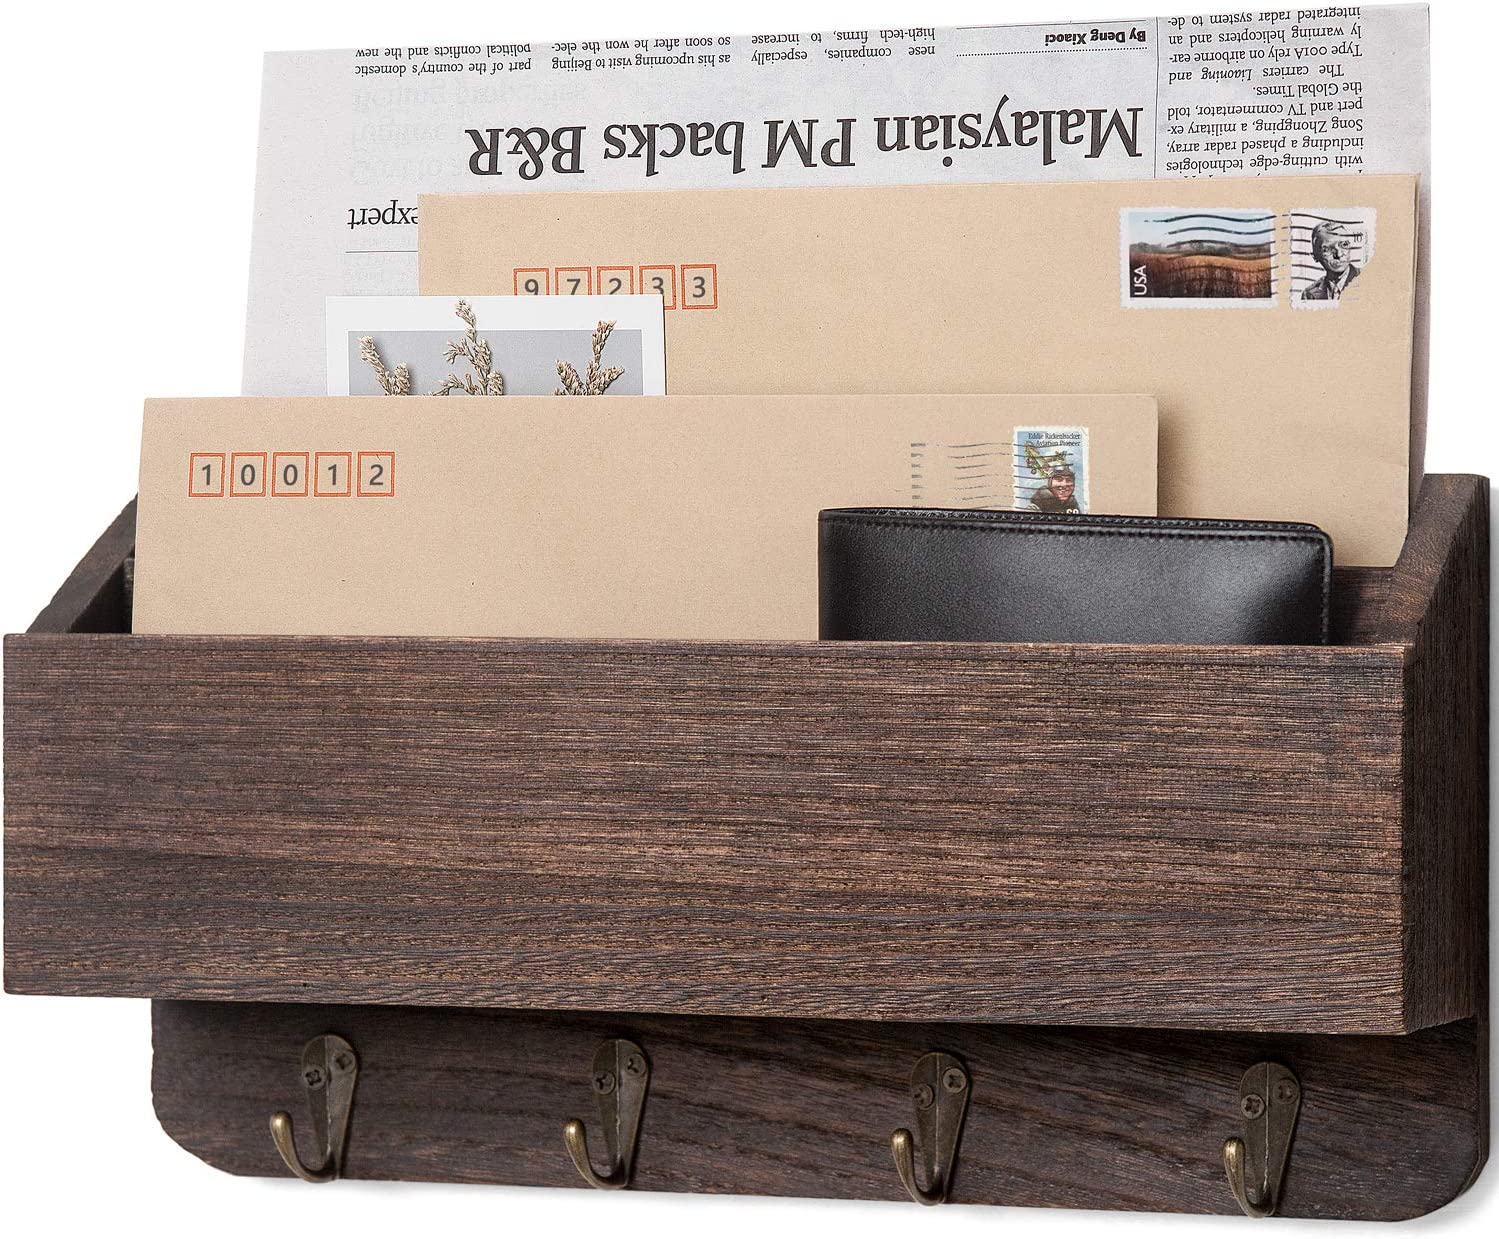 Holder Wooden Mail Sorter Organizer with 4 Key Hooks and A Floating Shelf Rustic